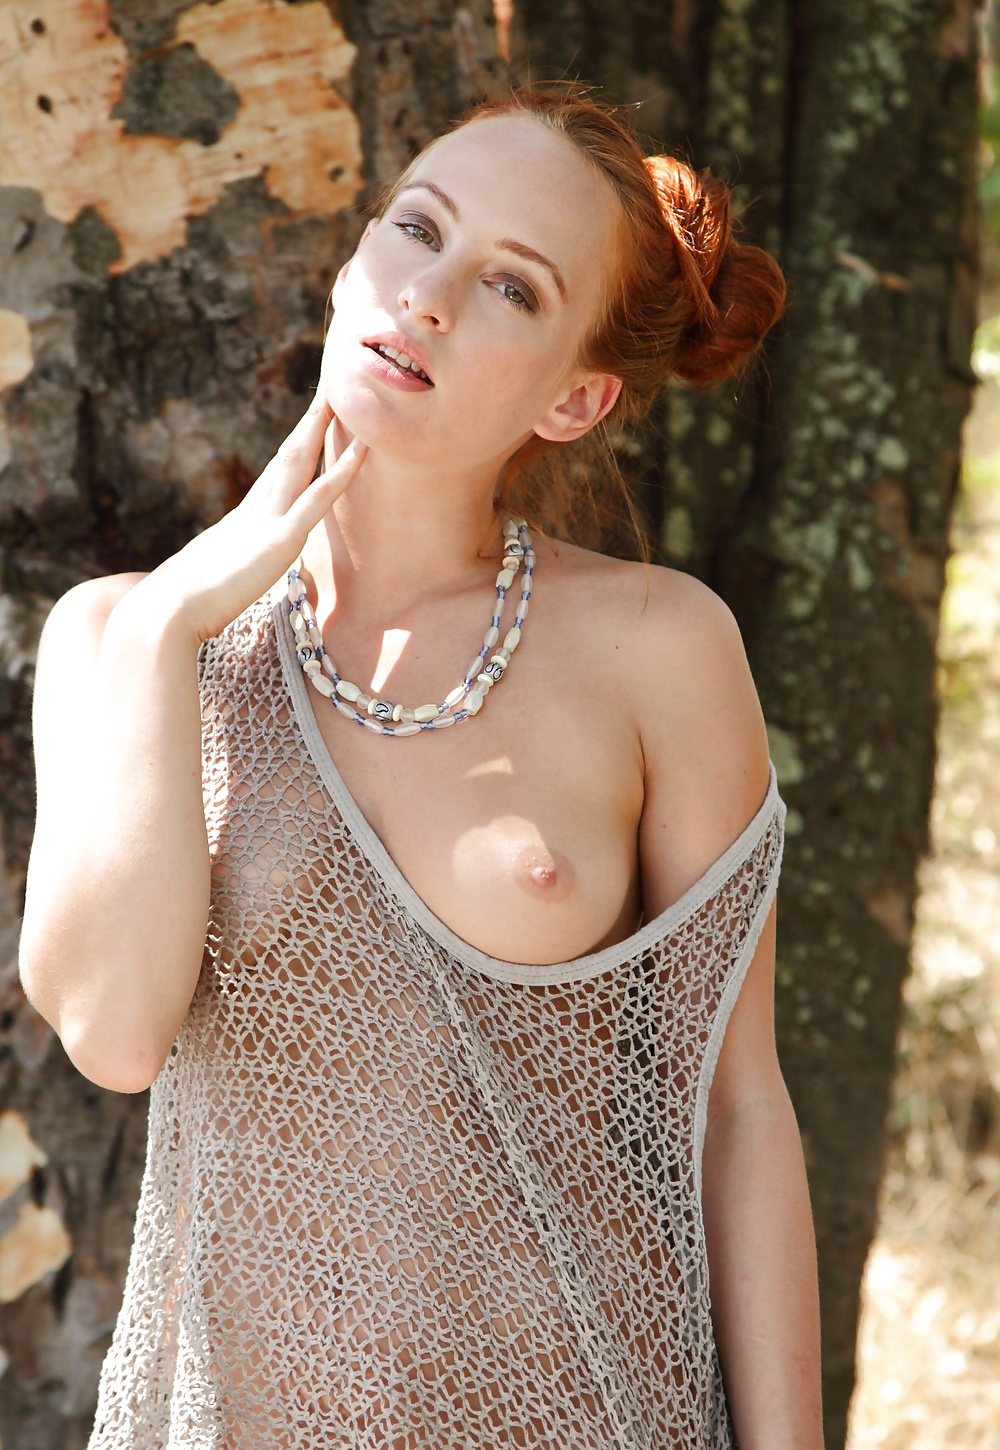 Sally naked redhaired